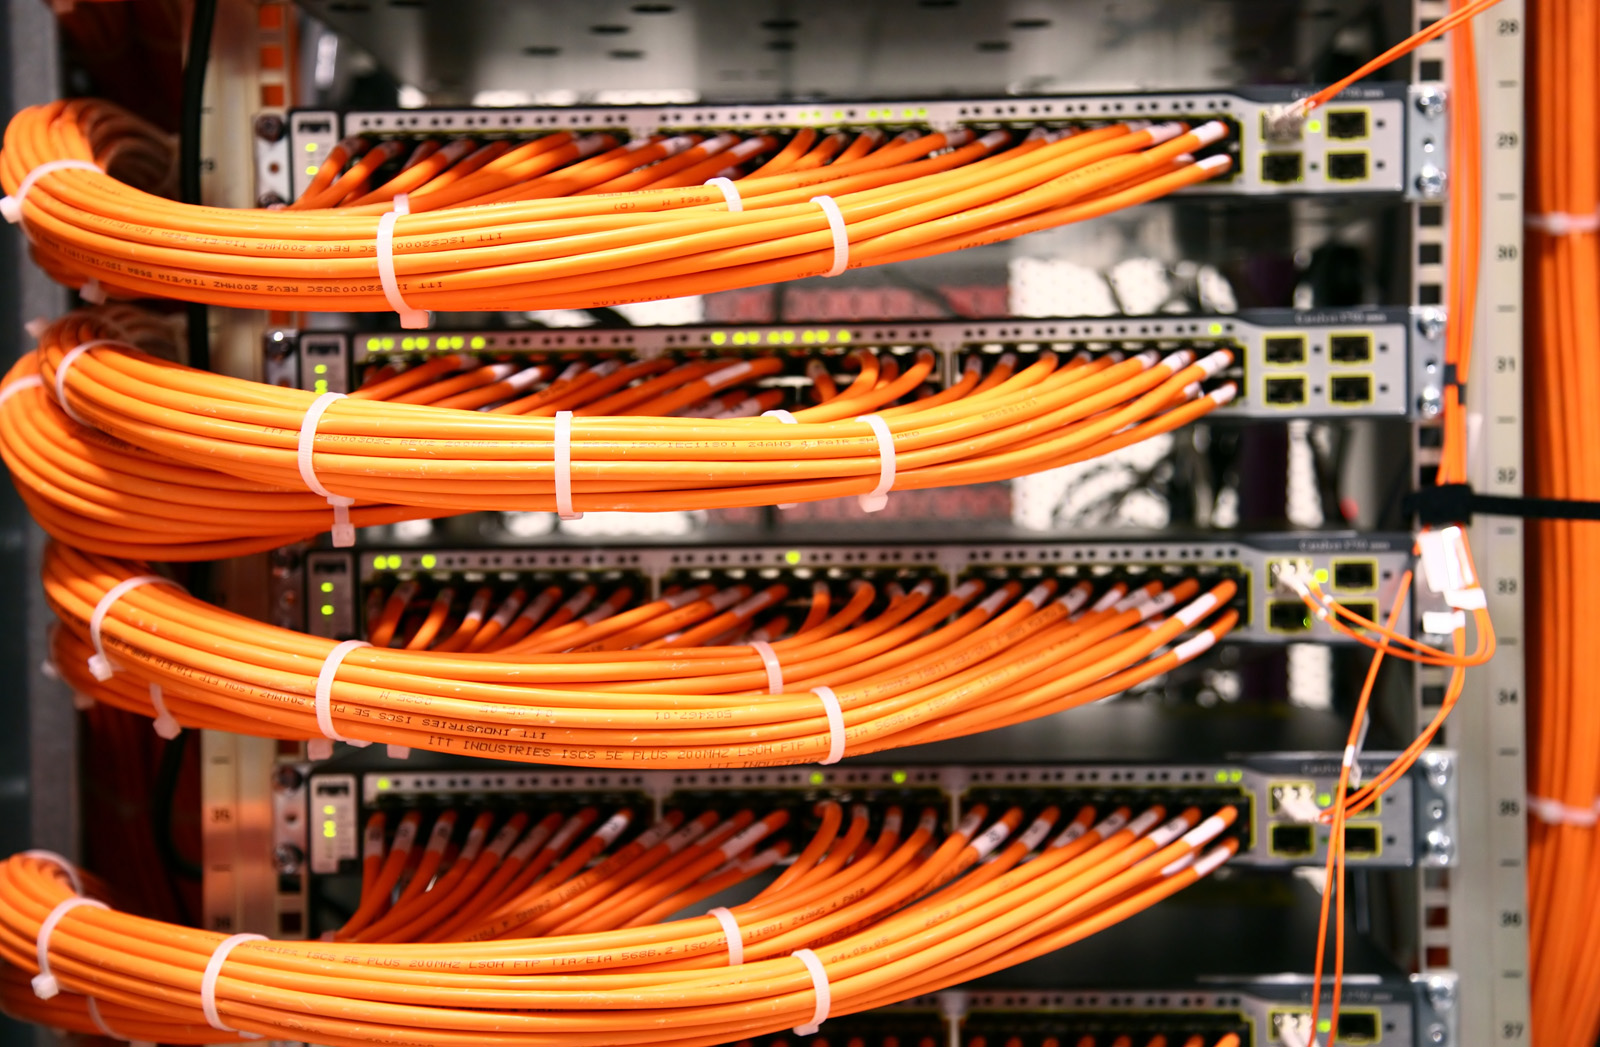 Minneola Florida Trusted Voice & Data Network Cabling Provider